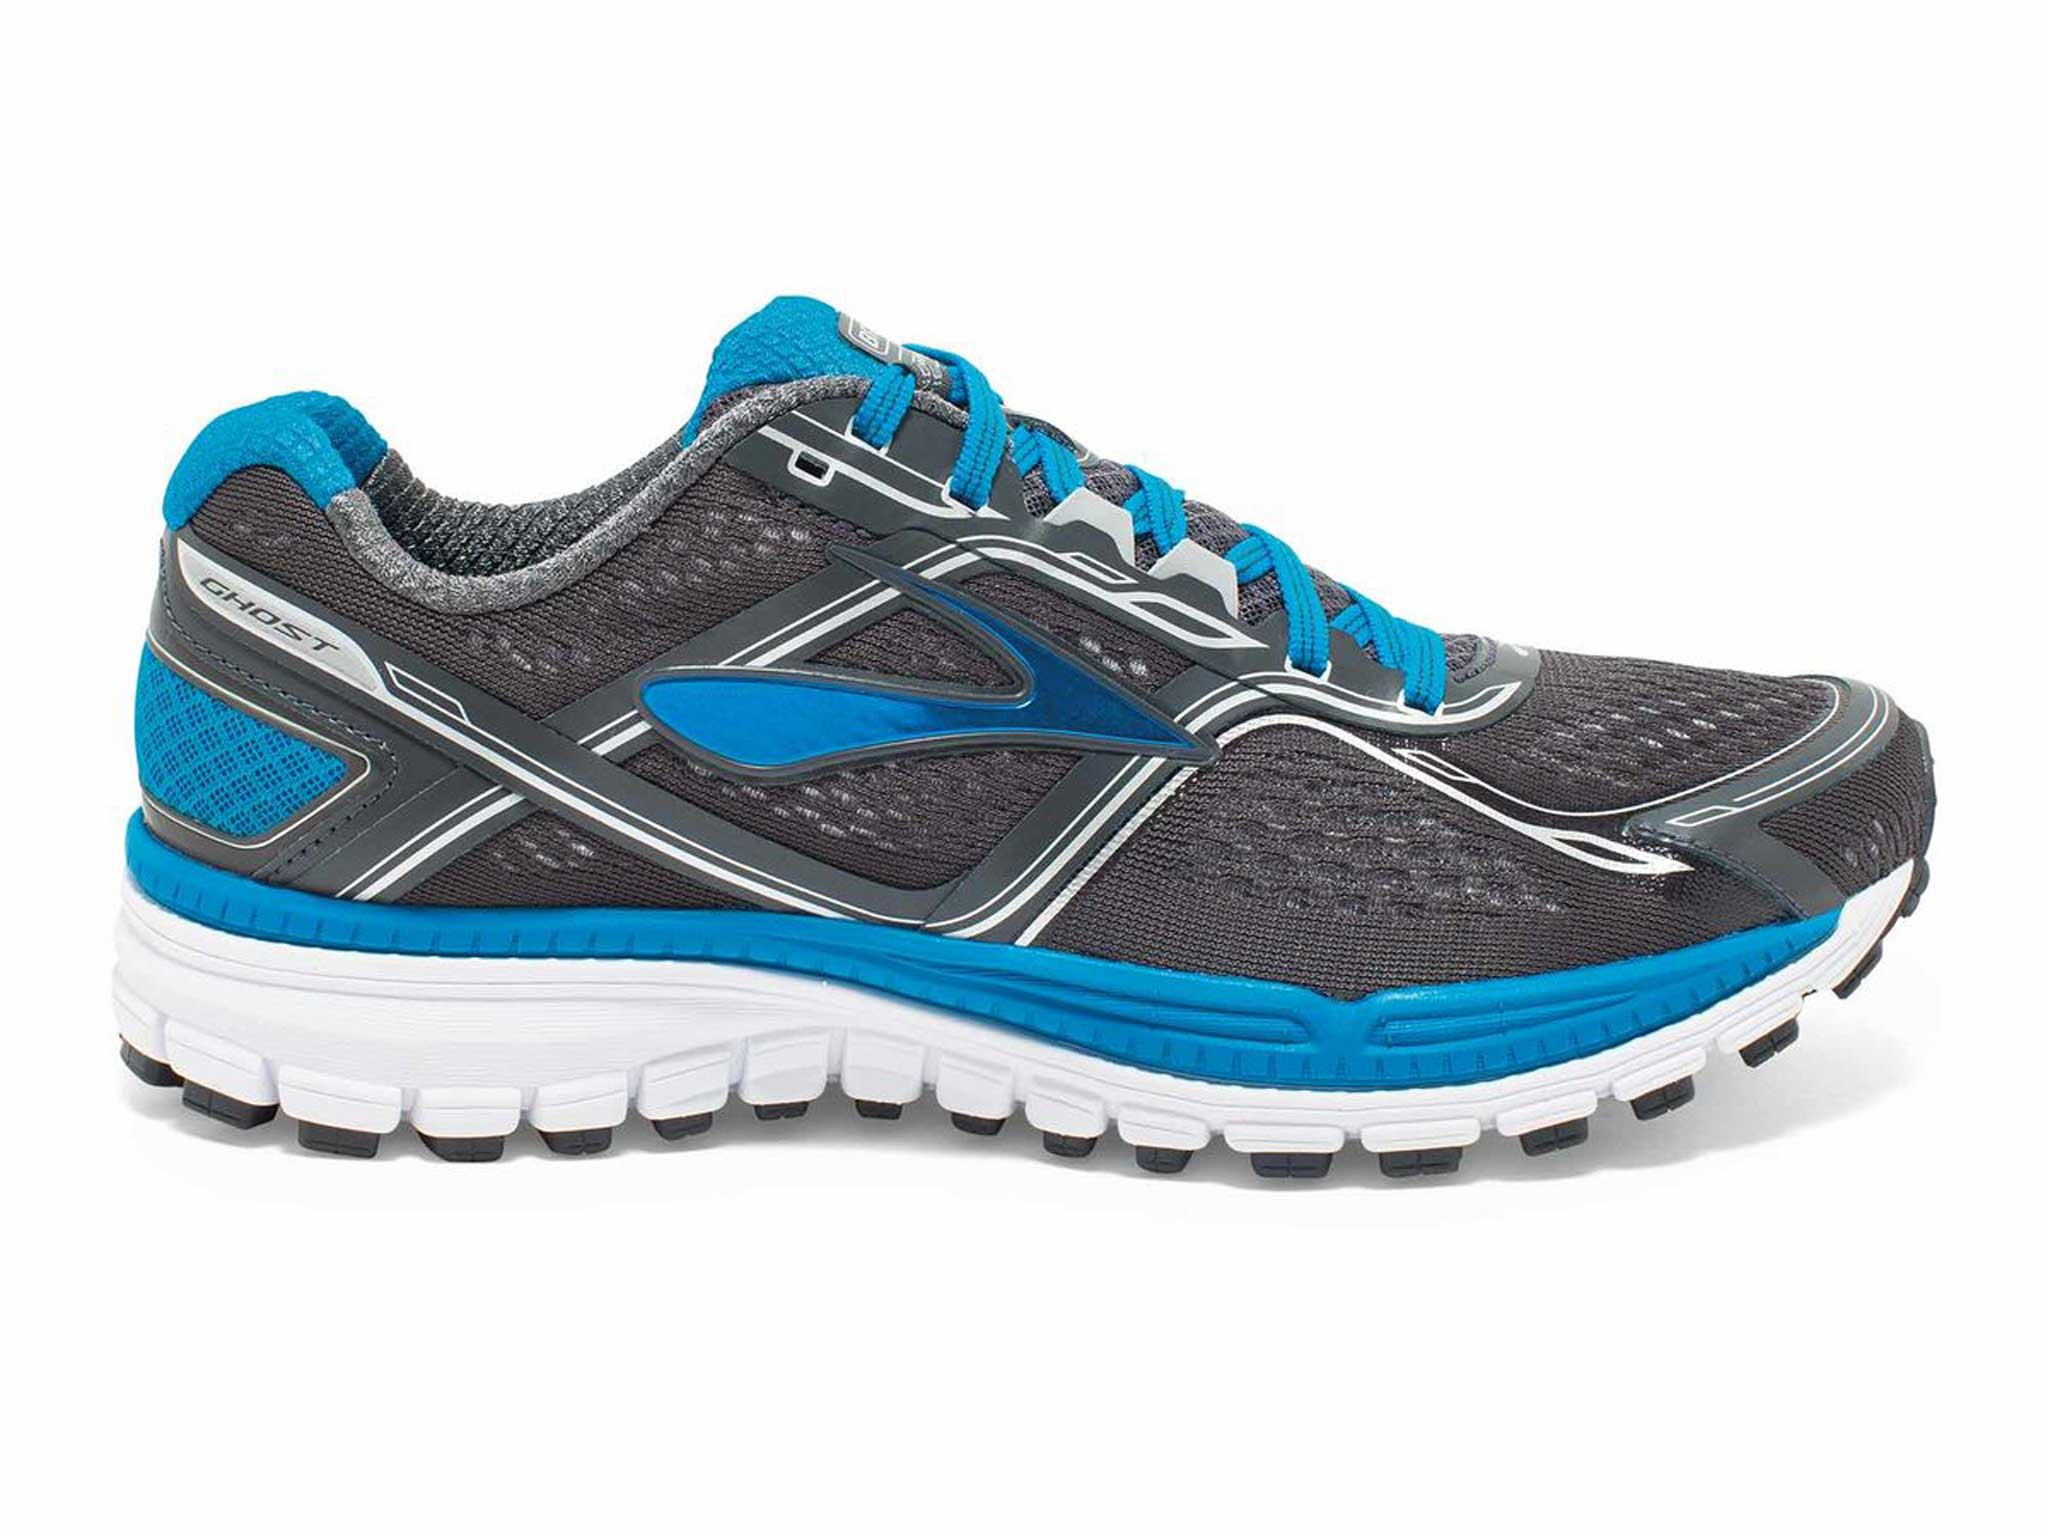 10 best men s running shoes   The Independent 559bbcef7ec7